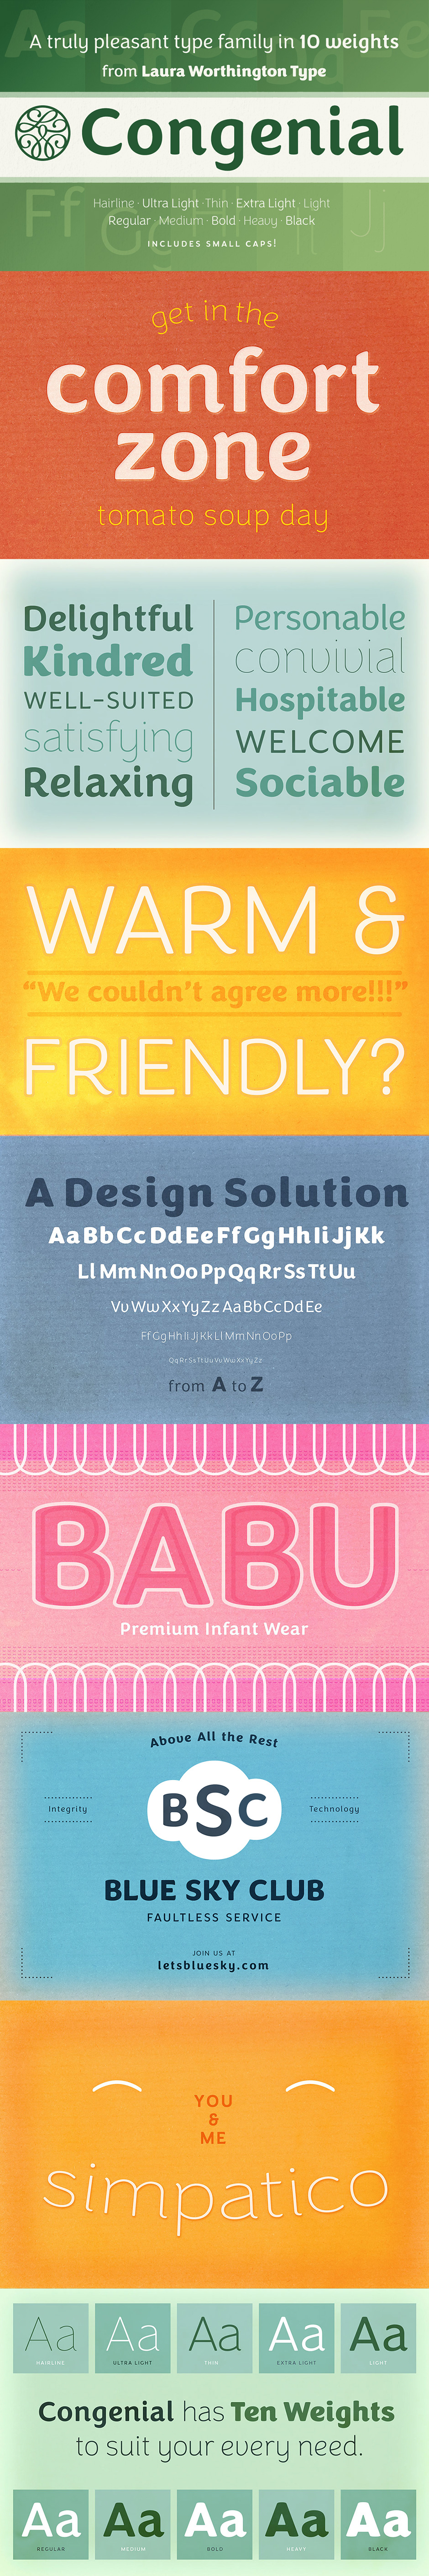 Definitive Fonts Bundle Congenial